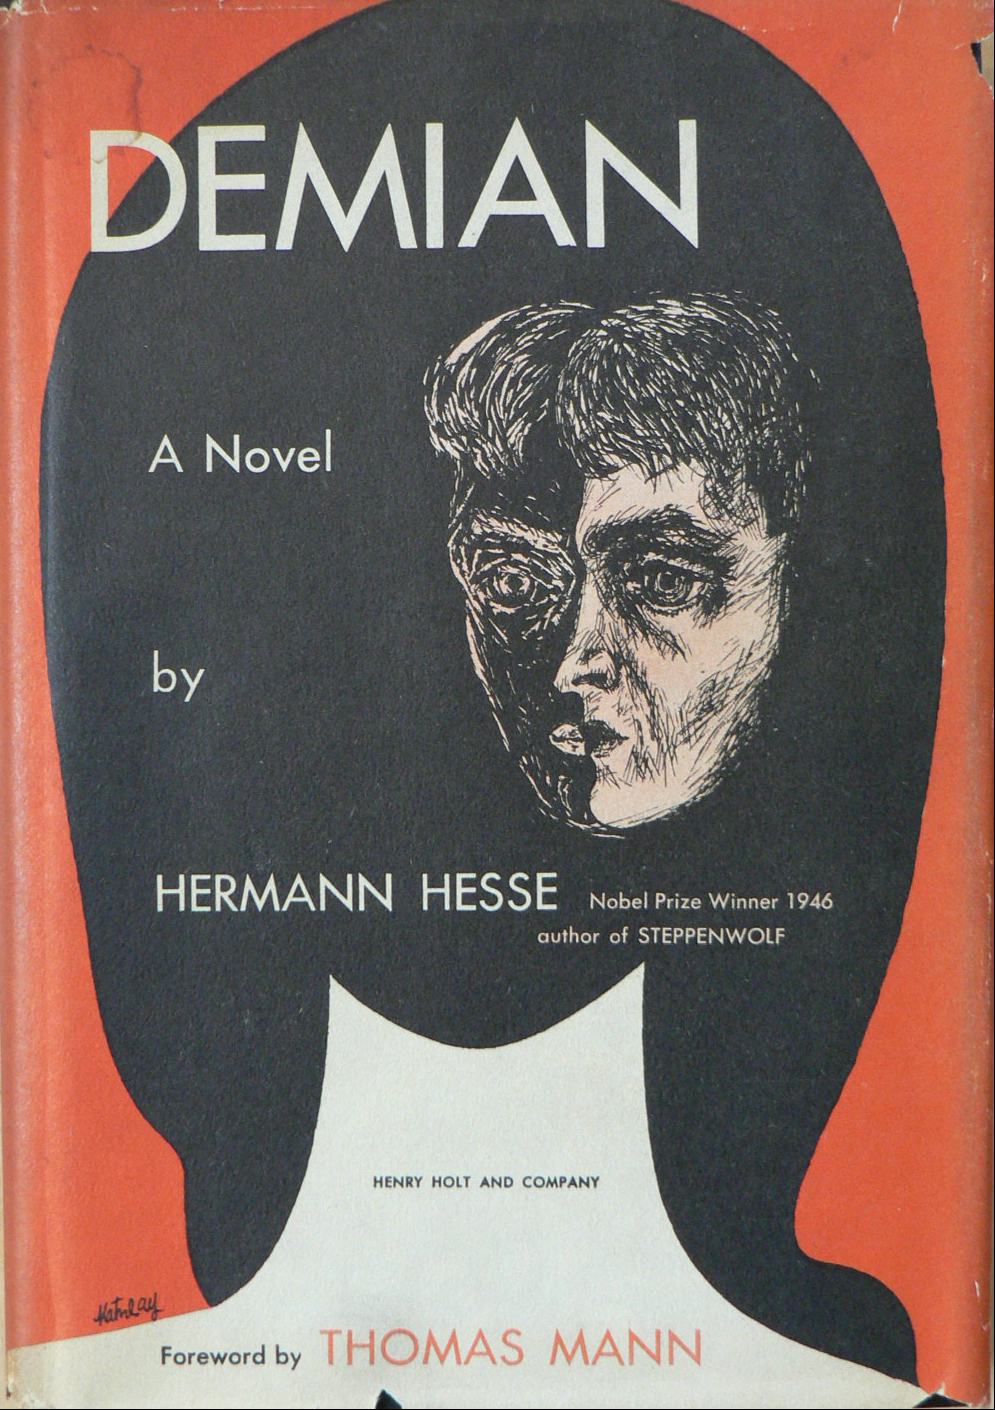 an introduction to the life of herman hesse Demian the story of emil sinclair's youth by hermann hesse  if one wanted an unsullied and orderly life, one made sure one was in league with this.